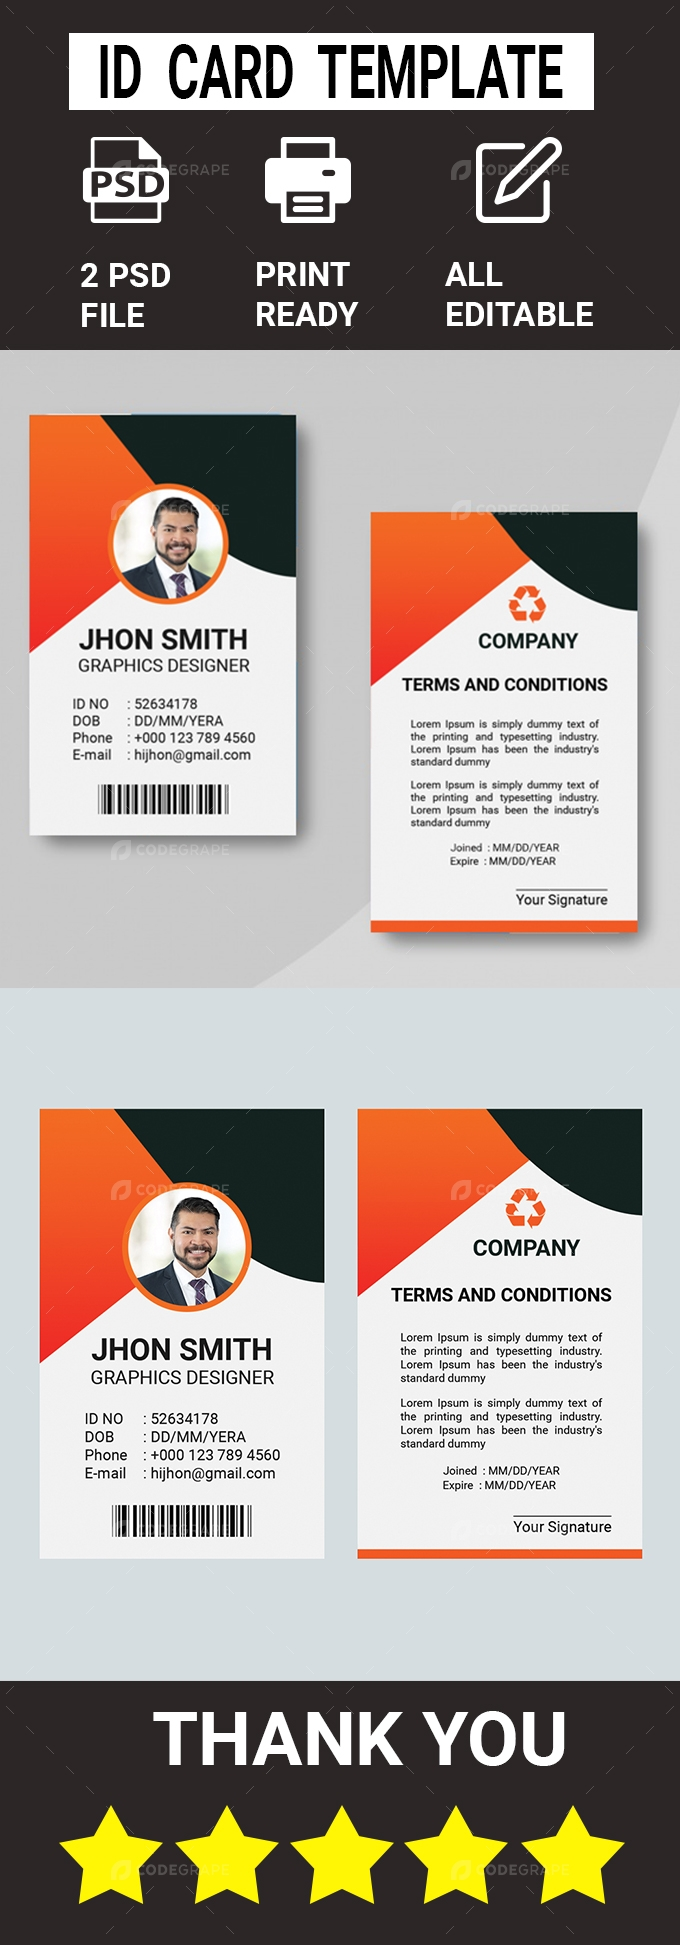 ID Card Template